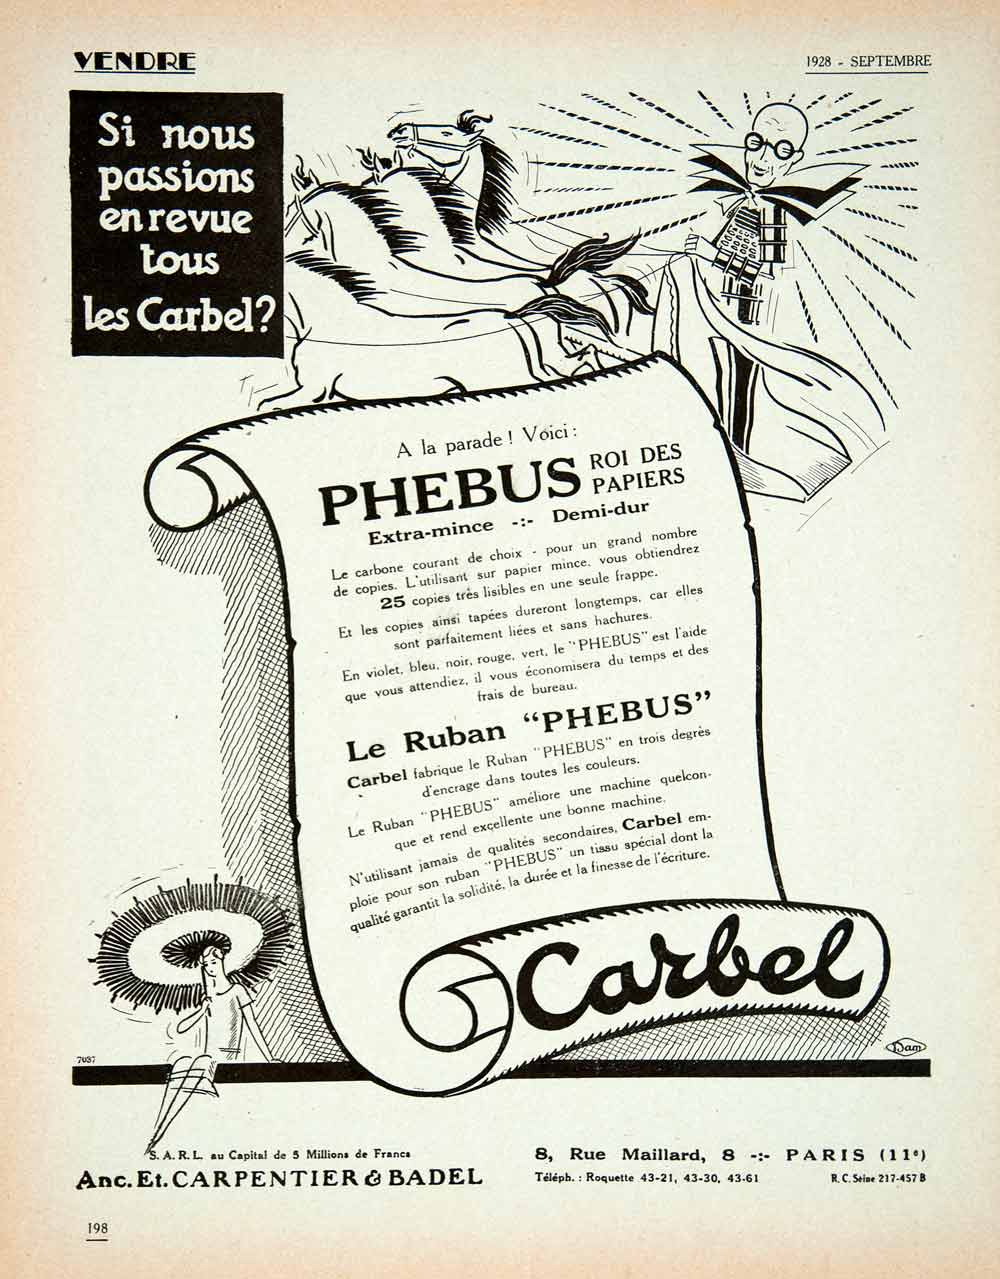 1928 Lithograph Ad French Carbel Phebus Typewriter Ribbon Carpentier Badel VEN5